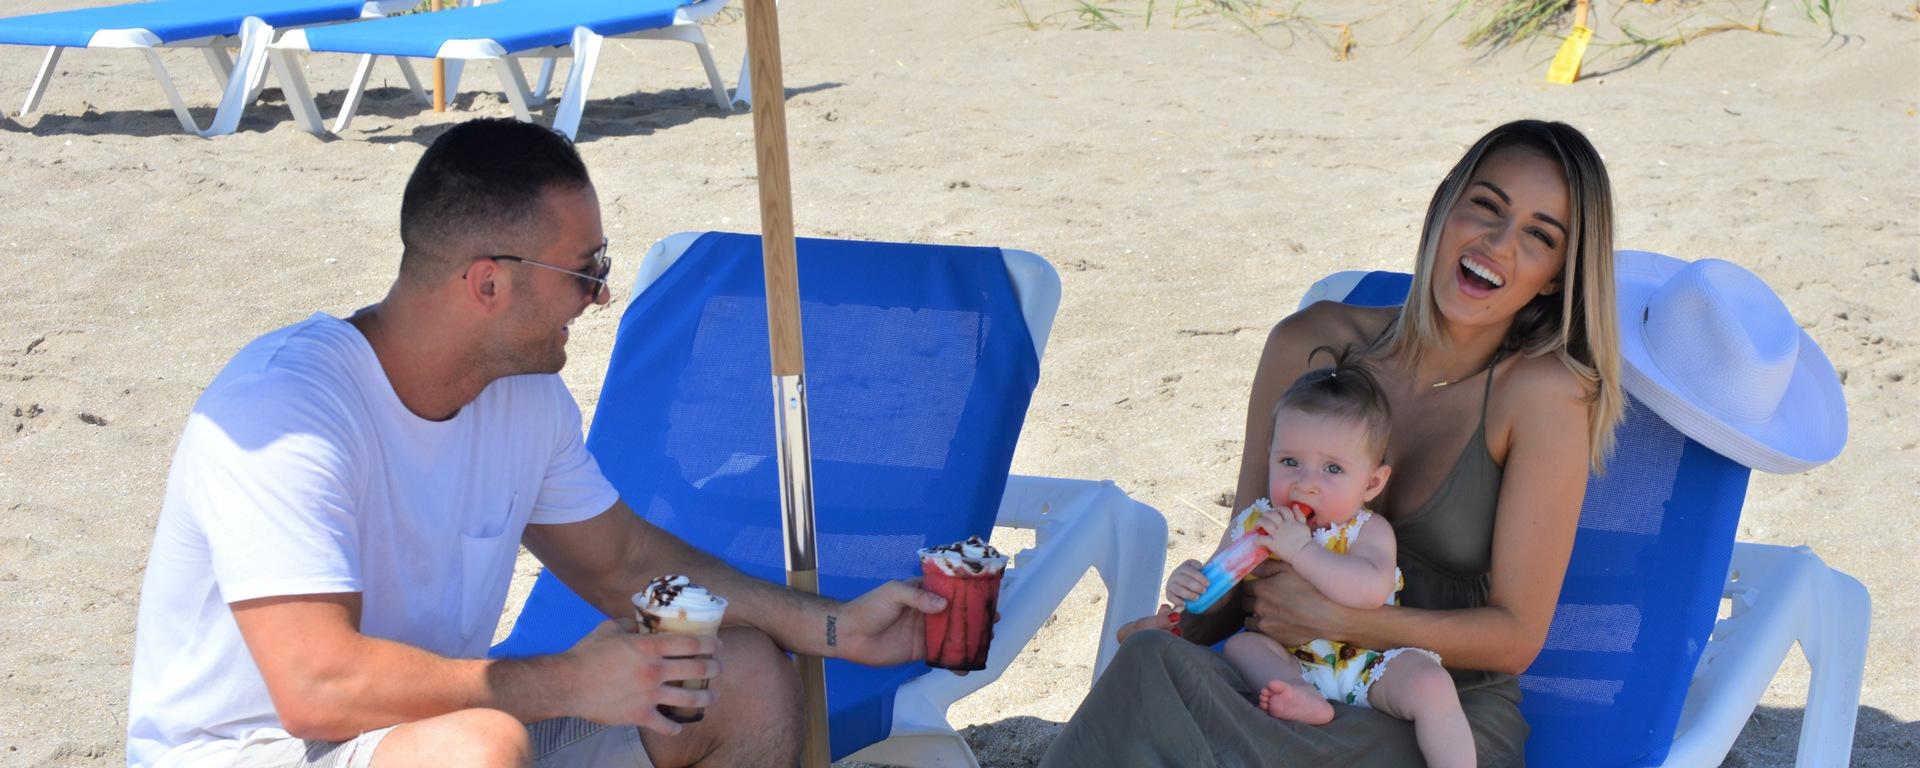 A family enjoying their time at the beach on our rented beach chairs